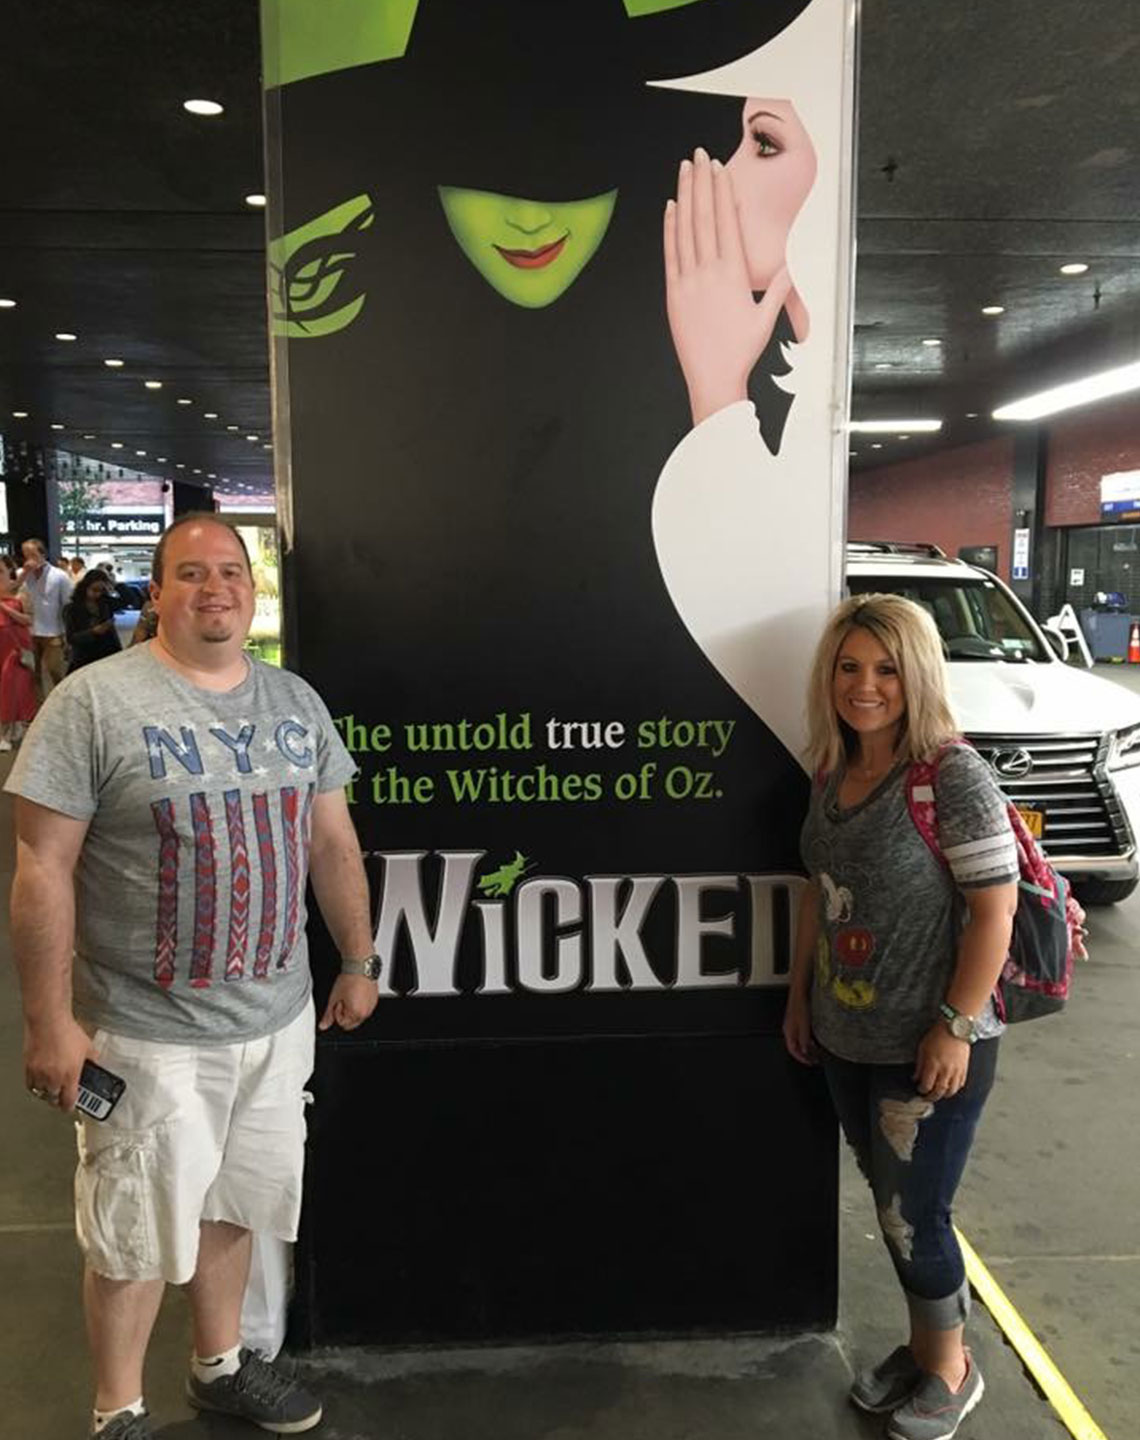 Director Brian Saylor and his wife Becky and by the Wicked sign on Broadway.